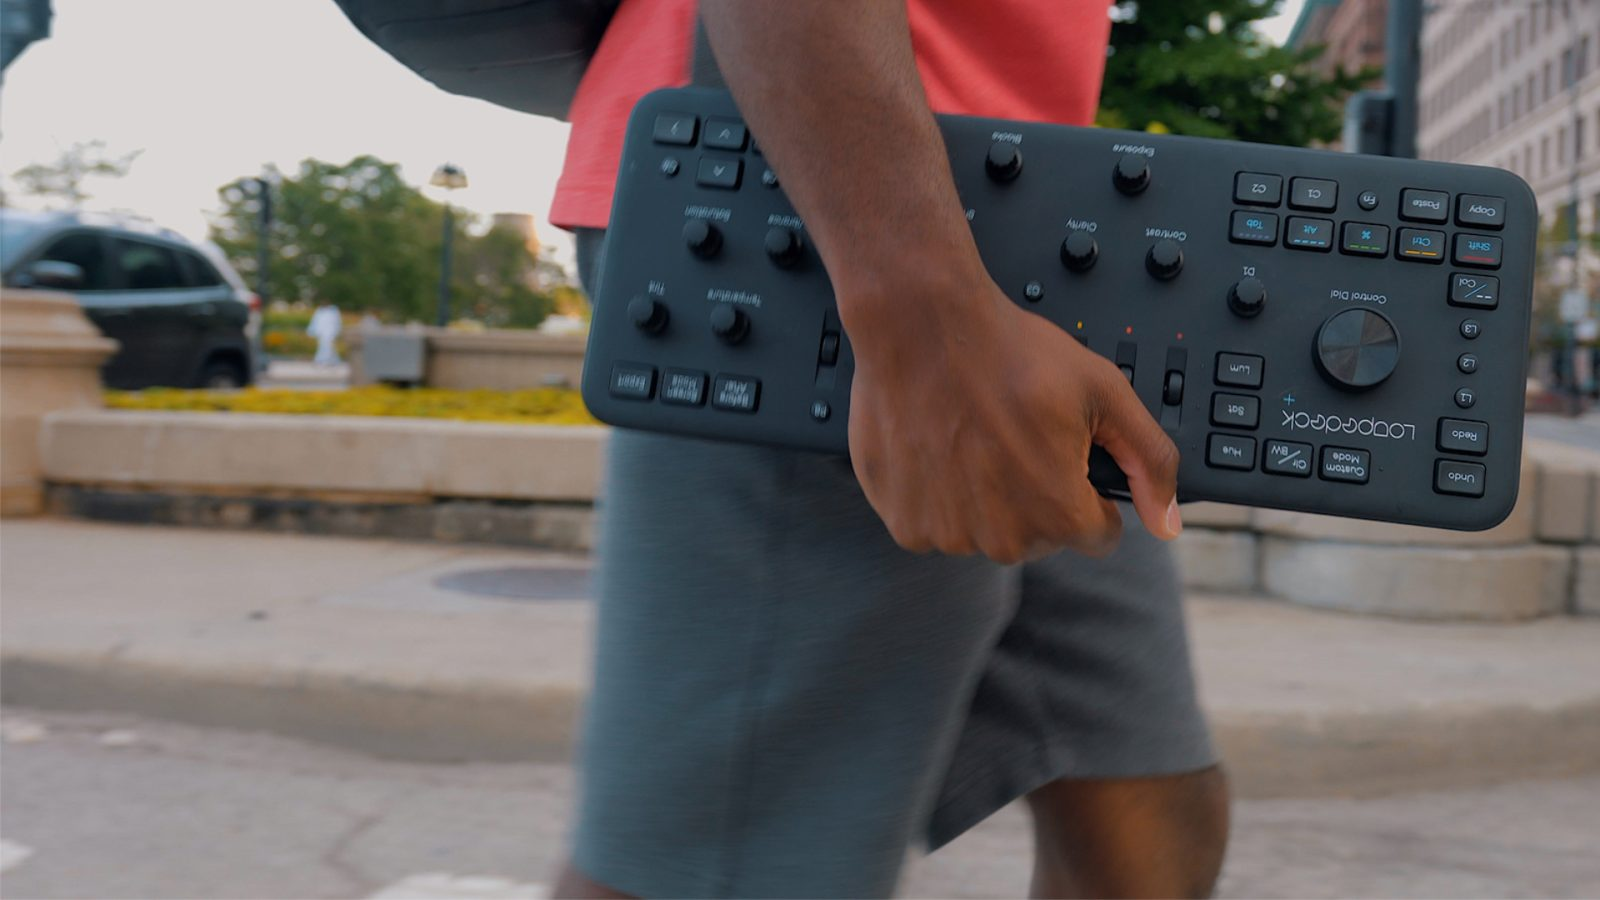 Hands-on: Loupedeck + Editing Console for FCP X and Adobe CC [Video]